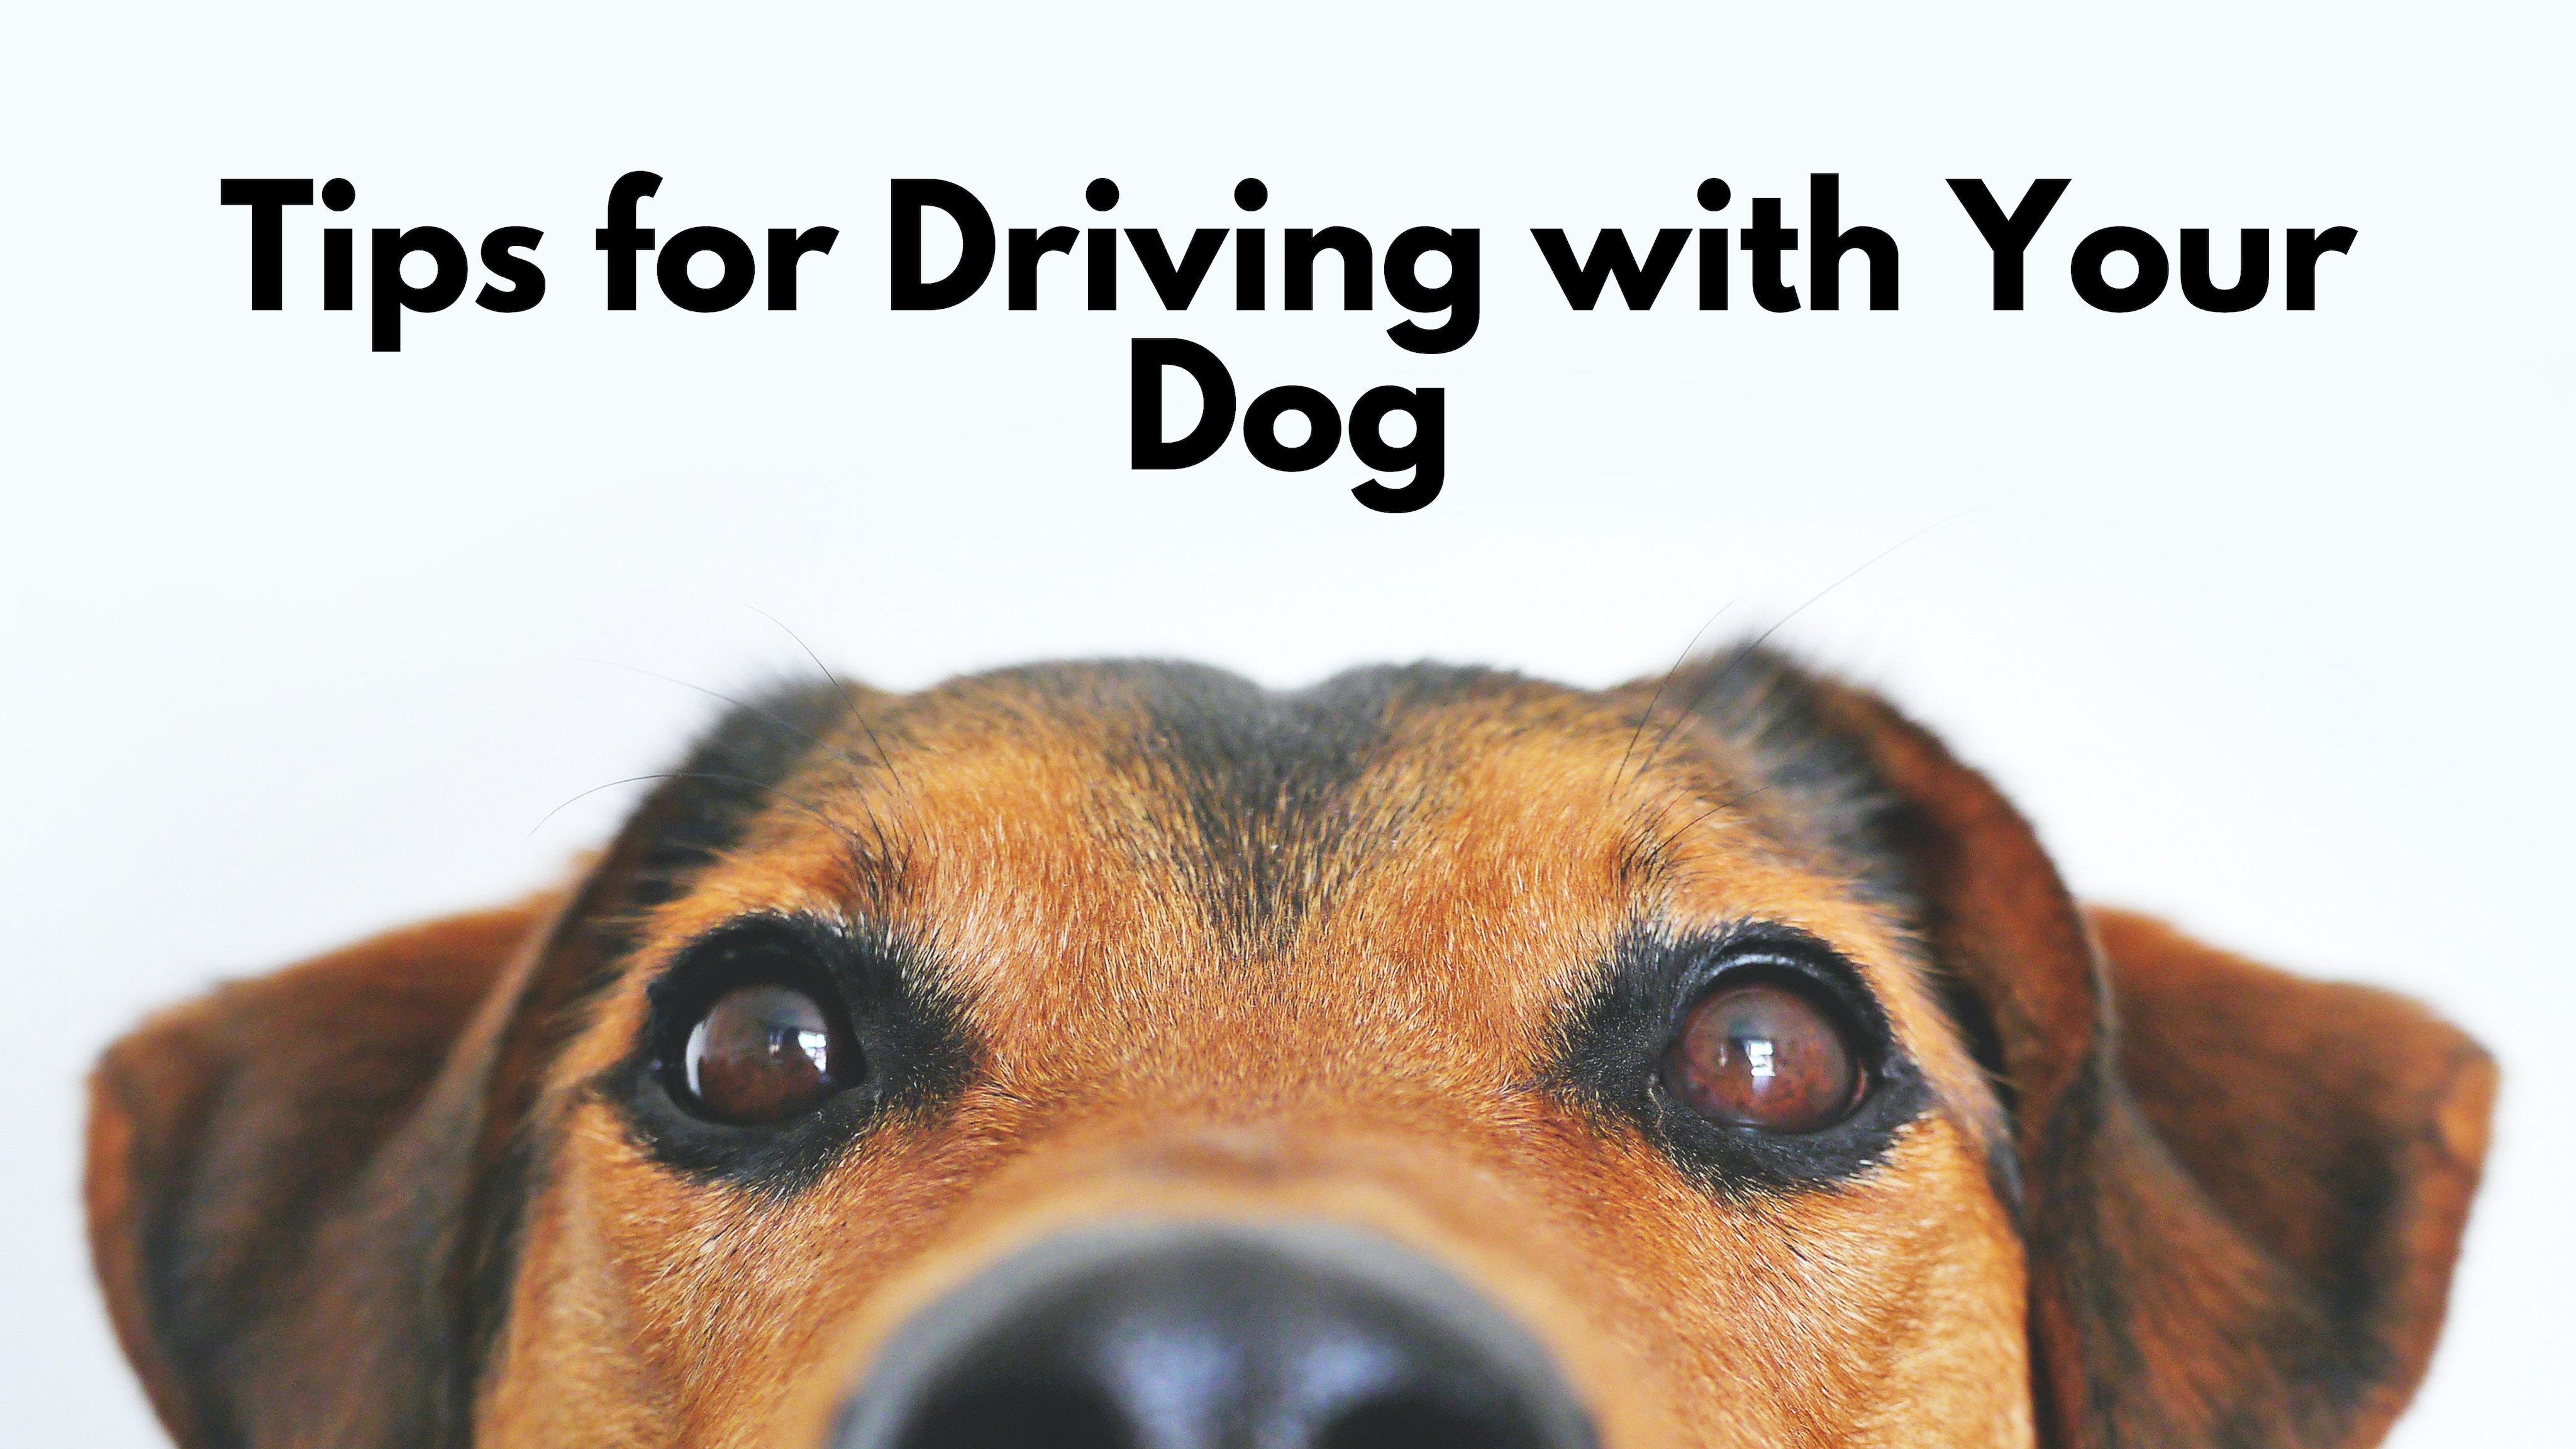 """Dog peeking from bottom of frame with """"Tips for Driving with Your Dog""""."""